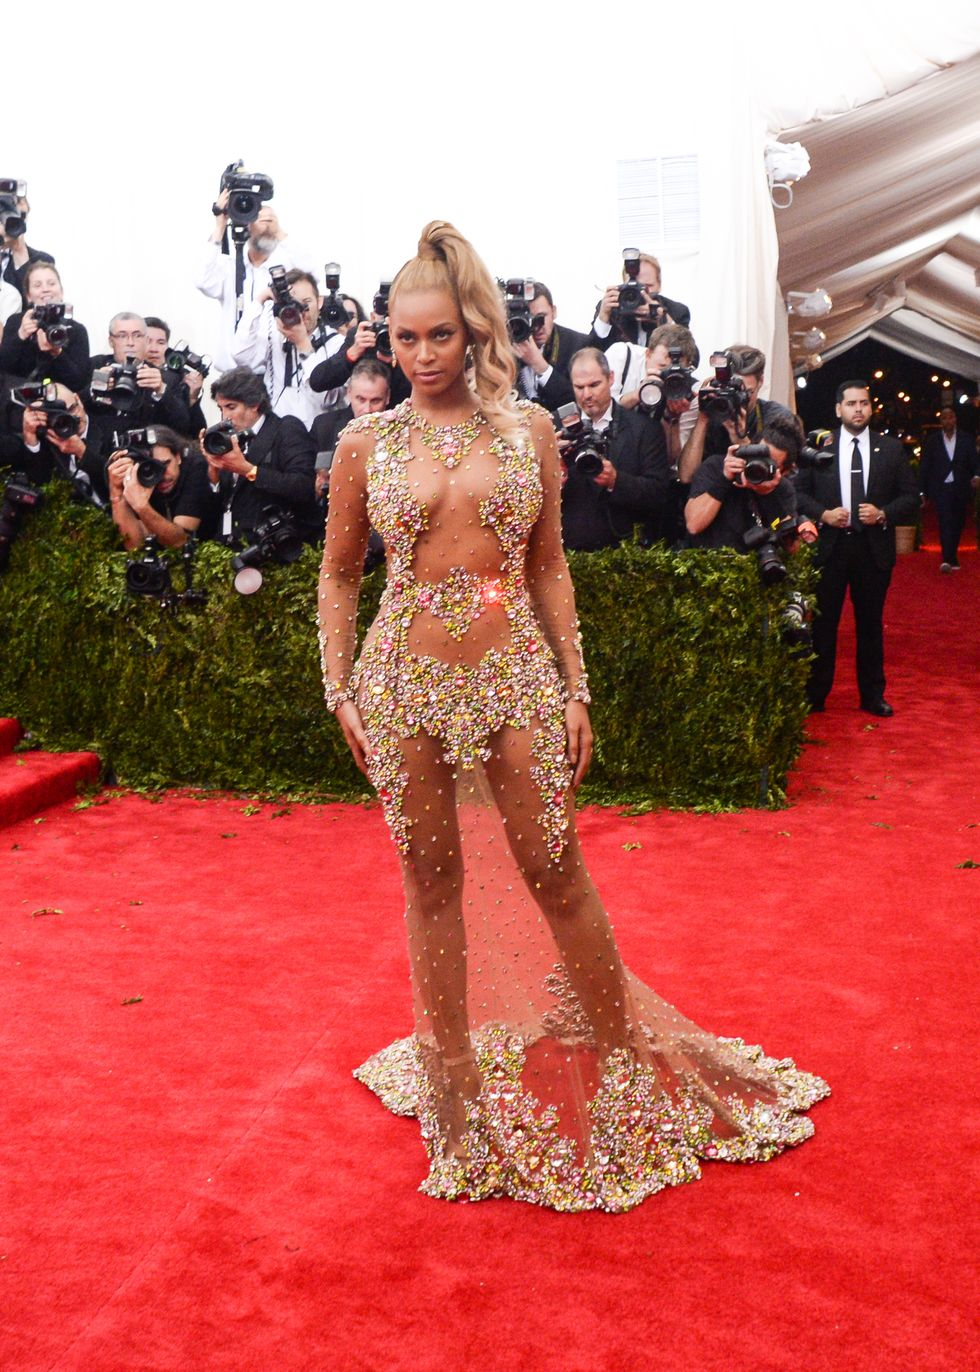 The Best and Worst Celebrity Fashion at the Met Gala